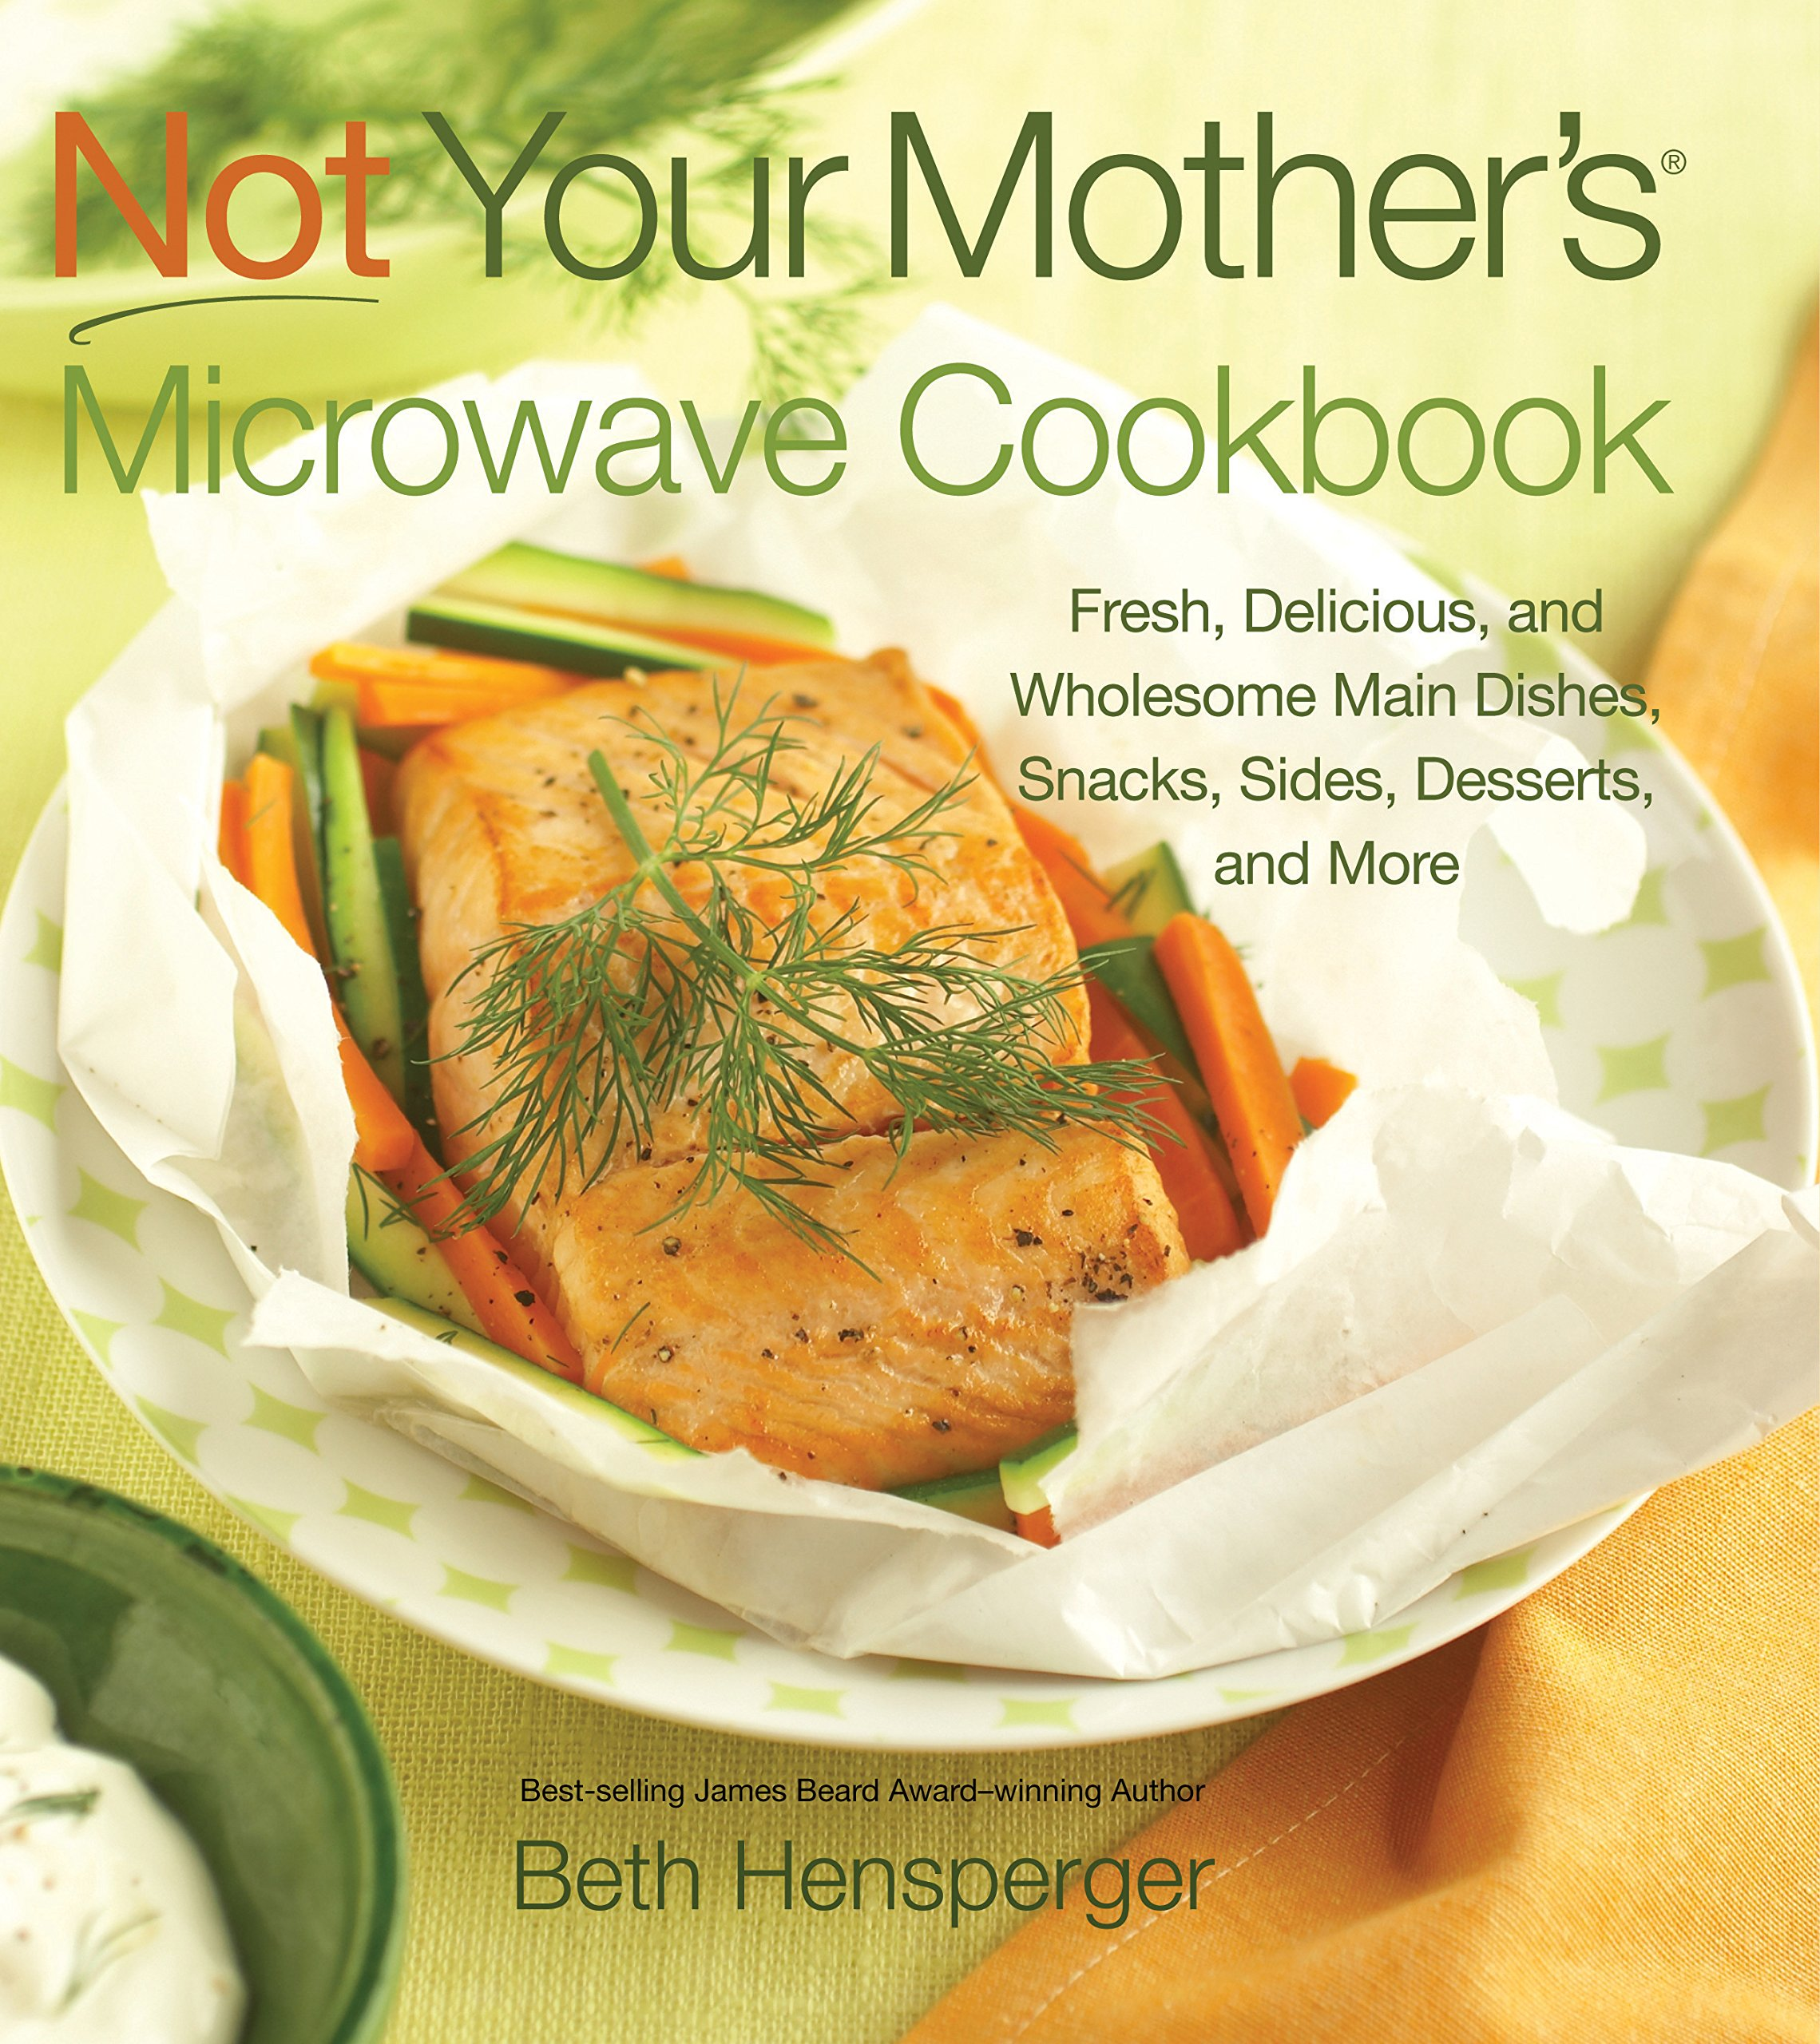 Not Your Mothers Microwave Cookbook